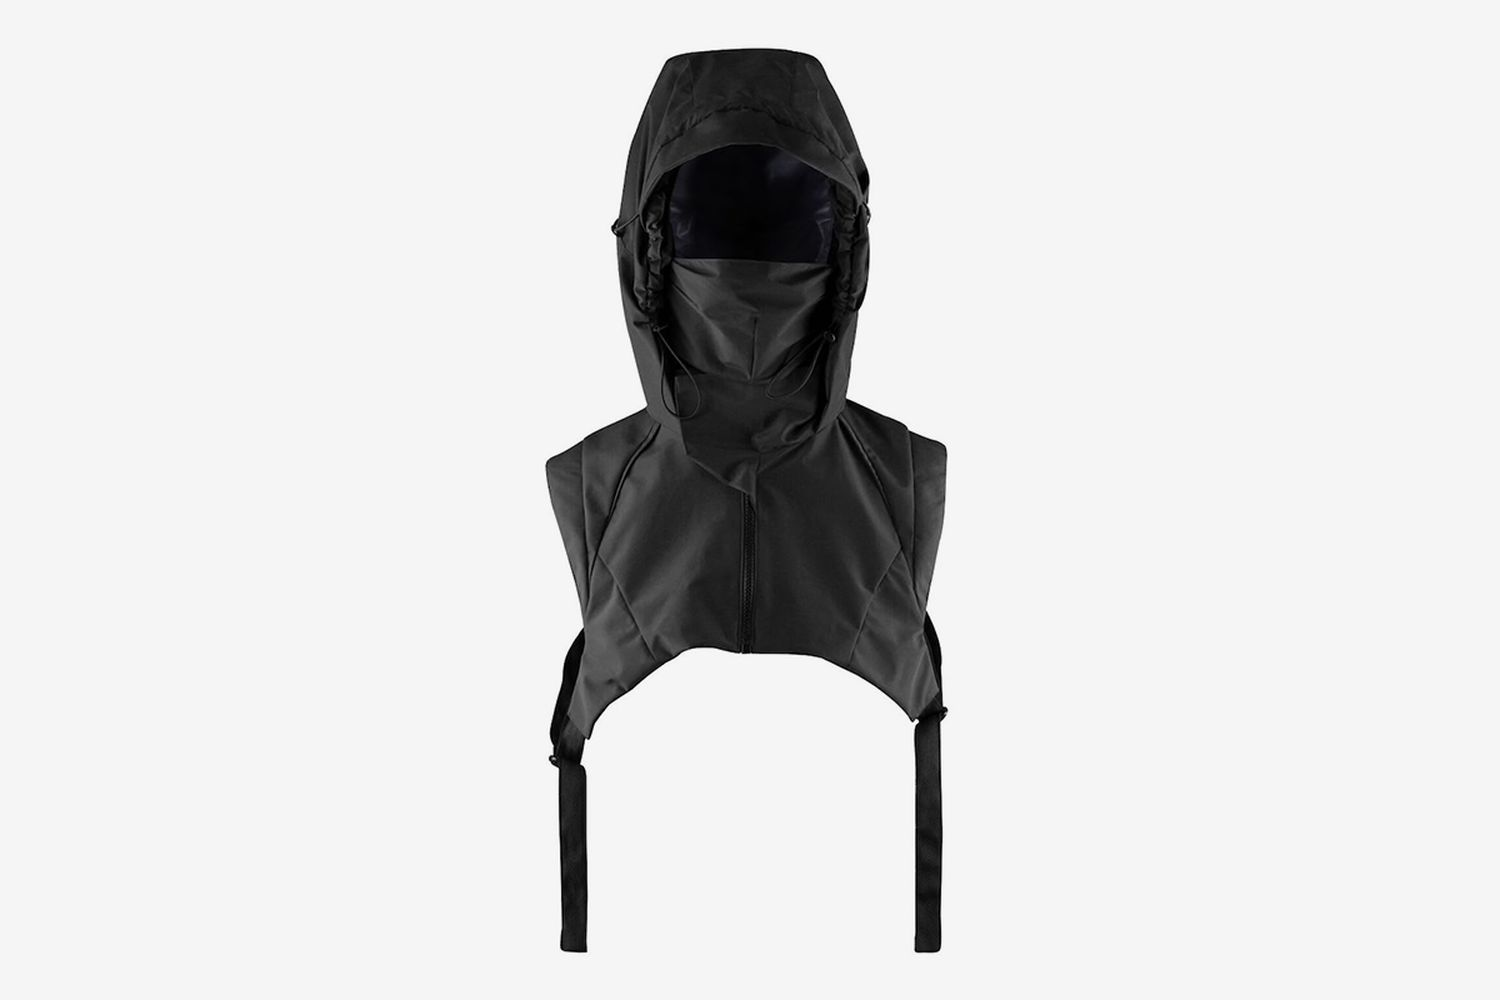 Hooded Nylon Gaiter Mask